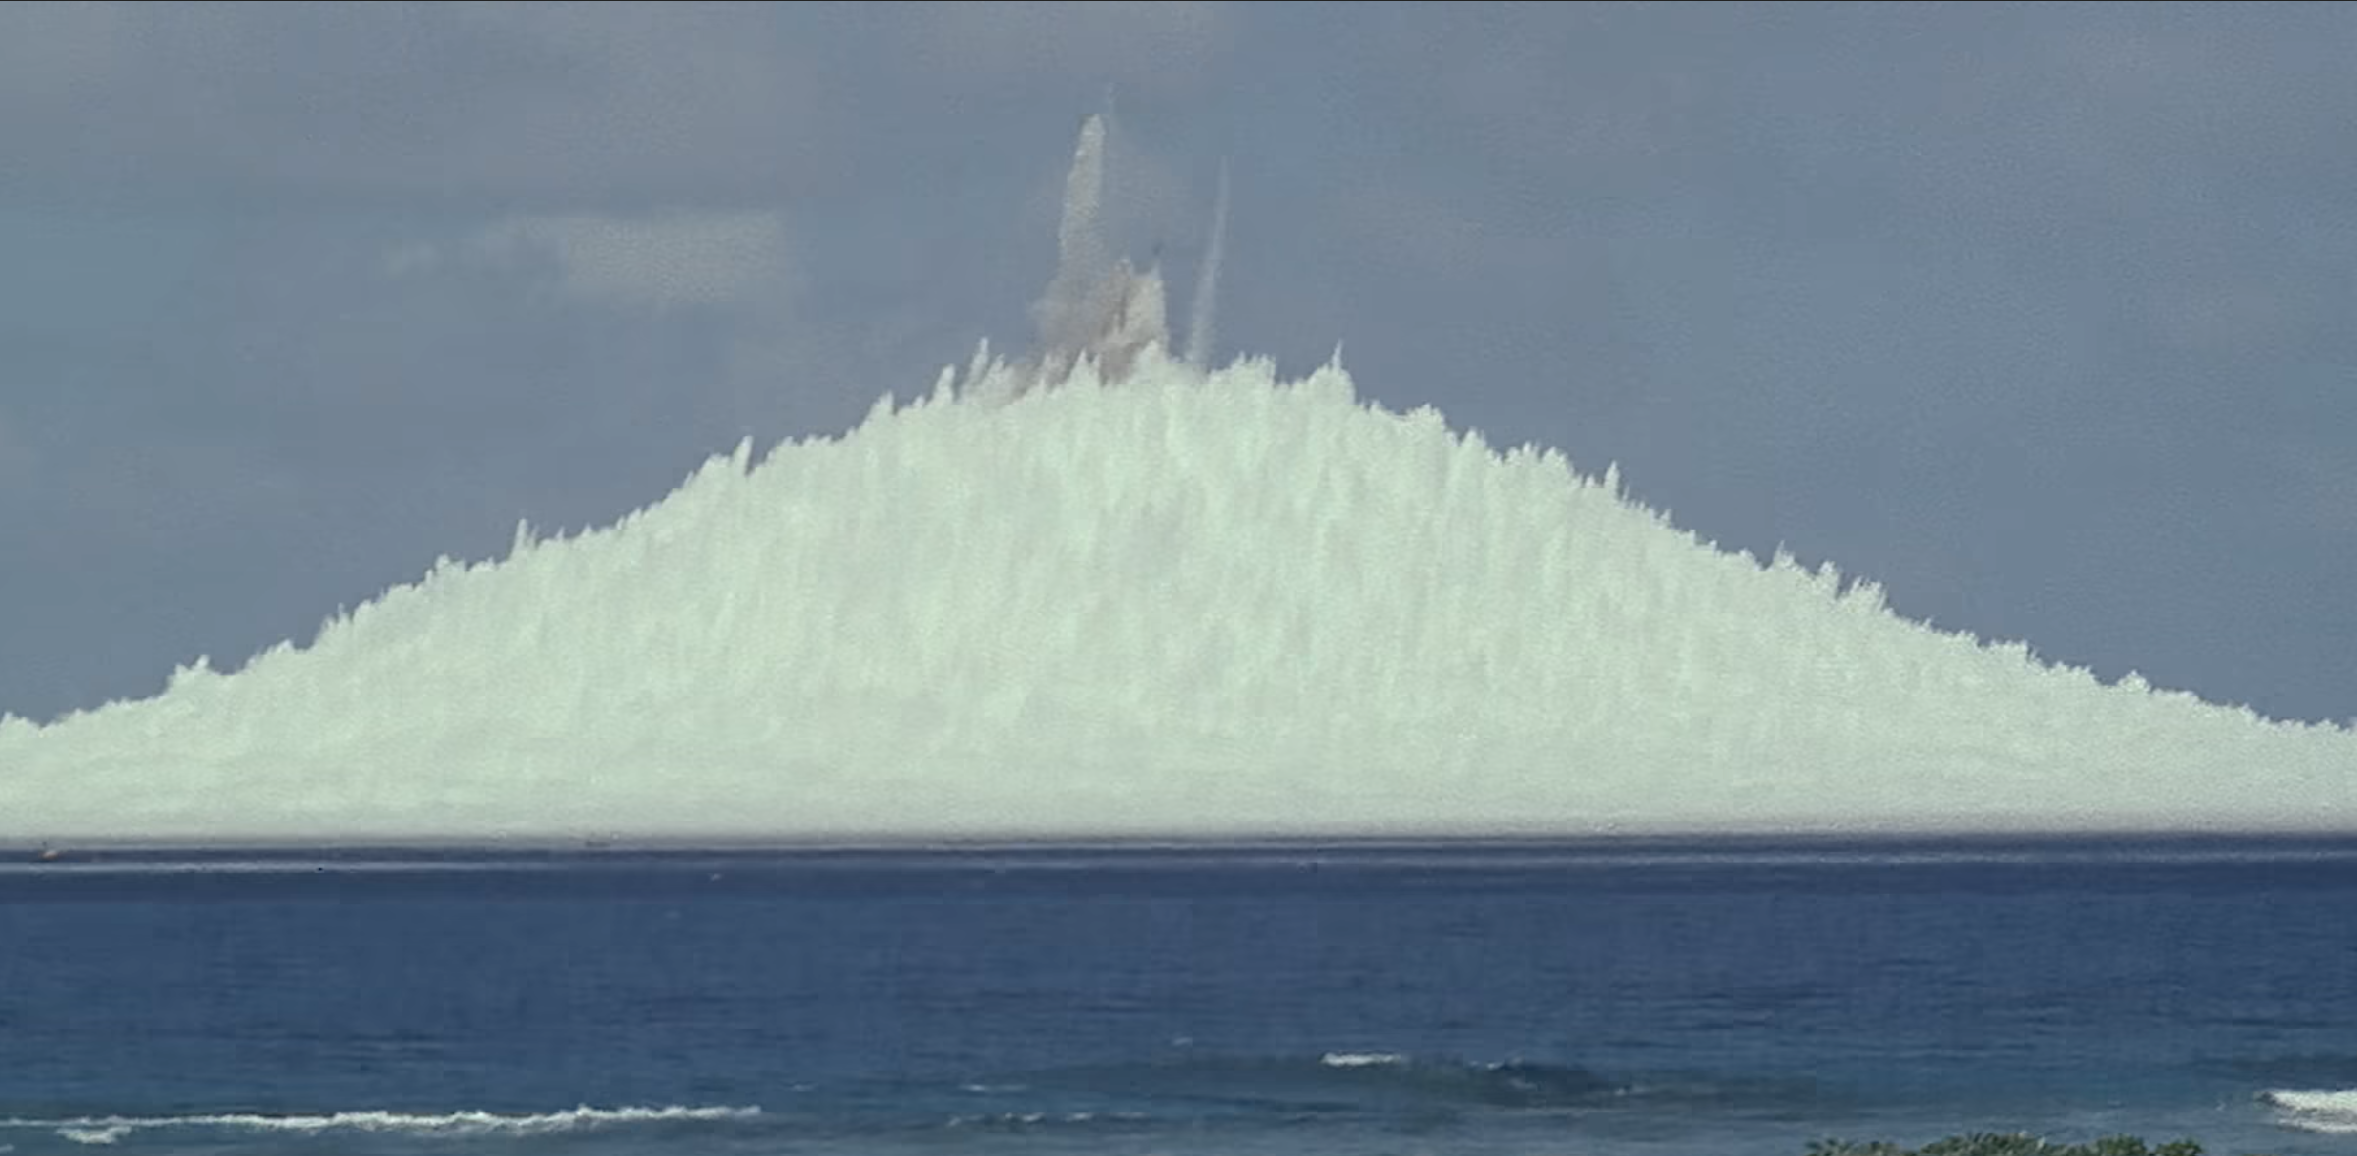 Watch a Tiny Nuke Throw a Tower of Water More Than a Half-Mile High